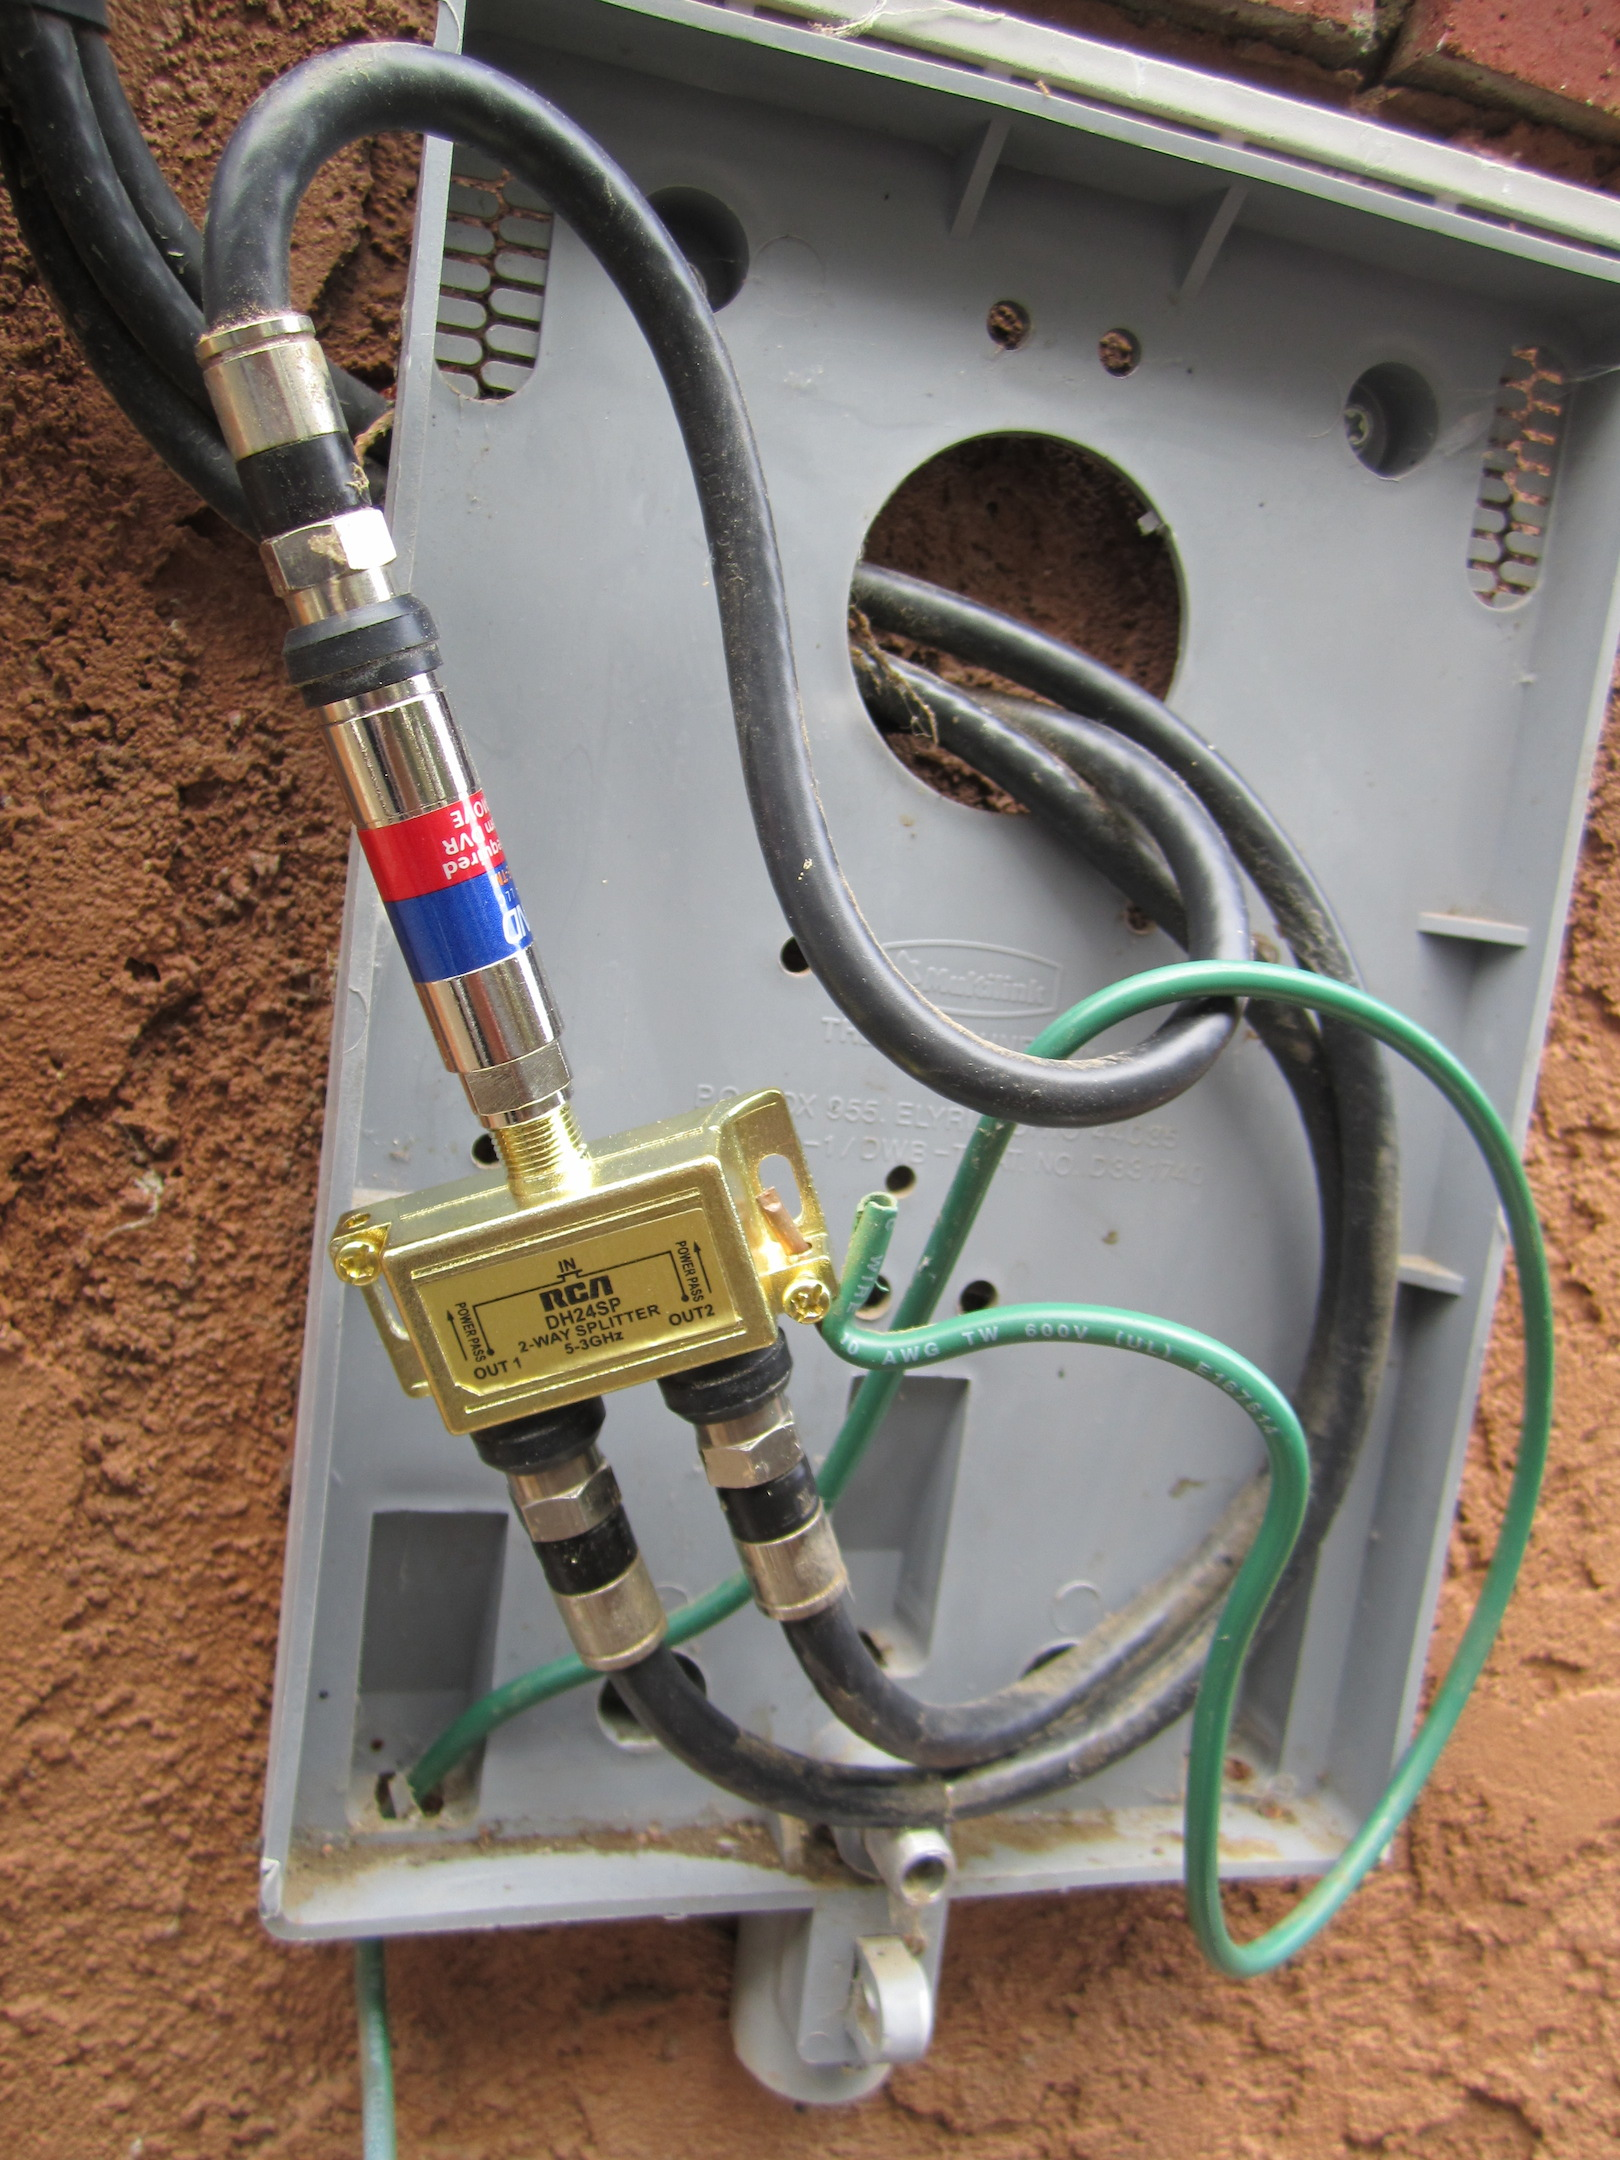 hight resolution of original cable utility box modified cable utility box